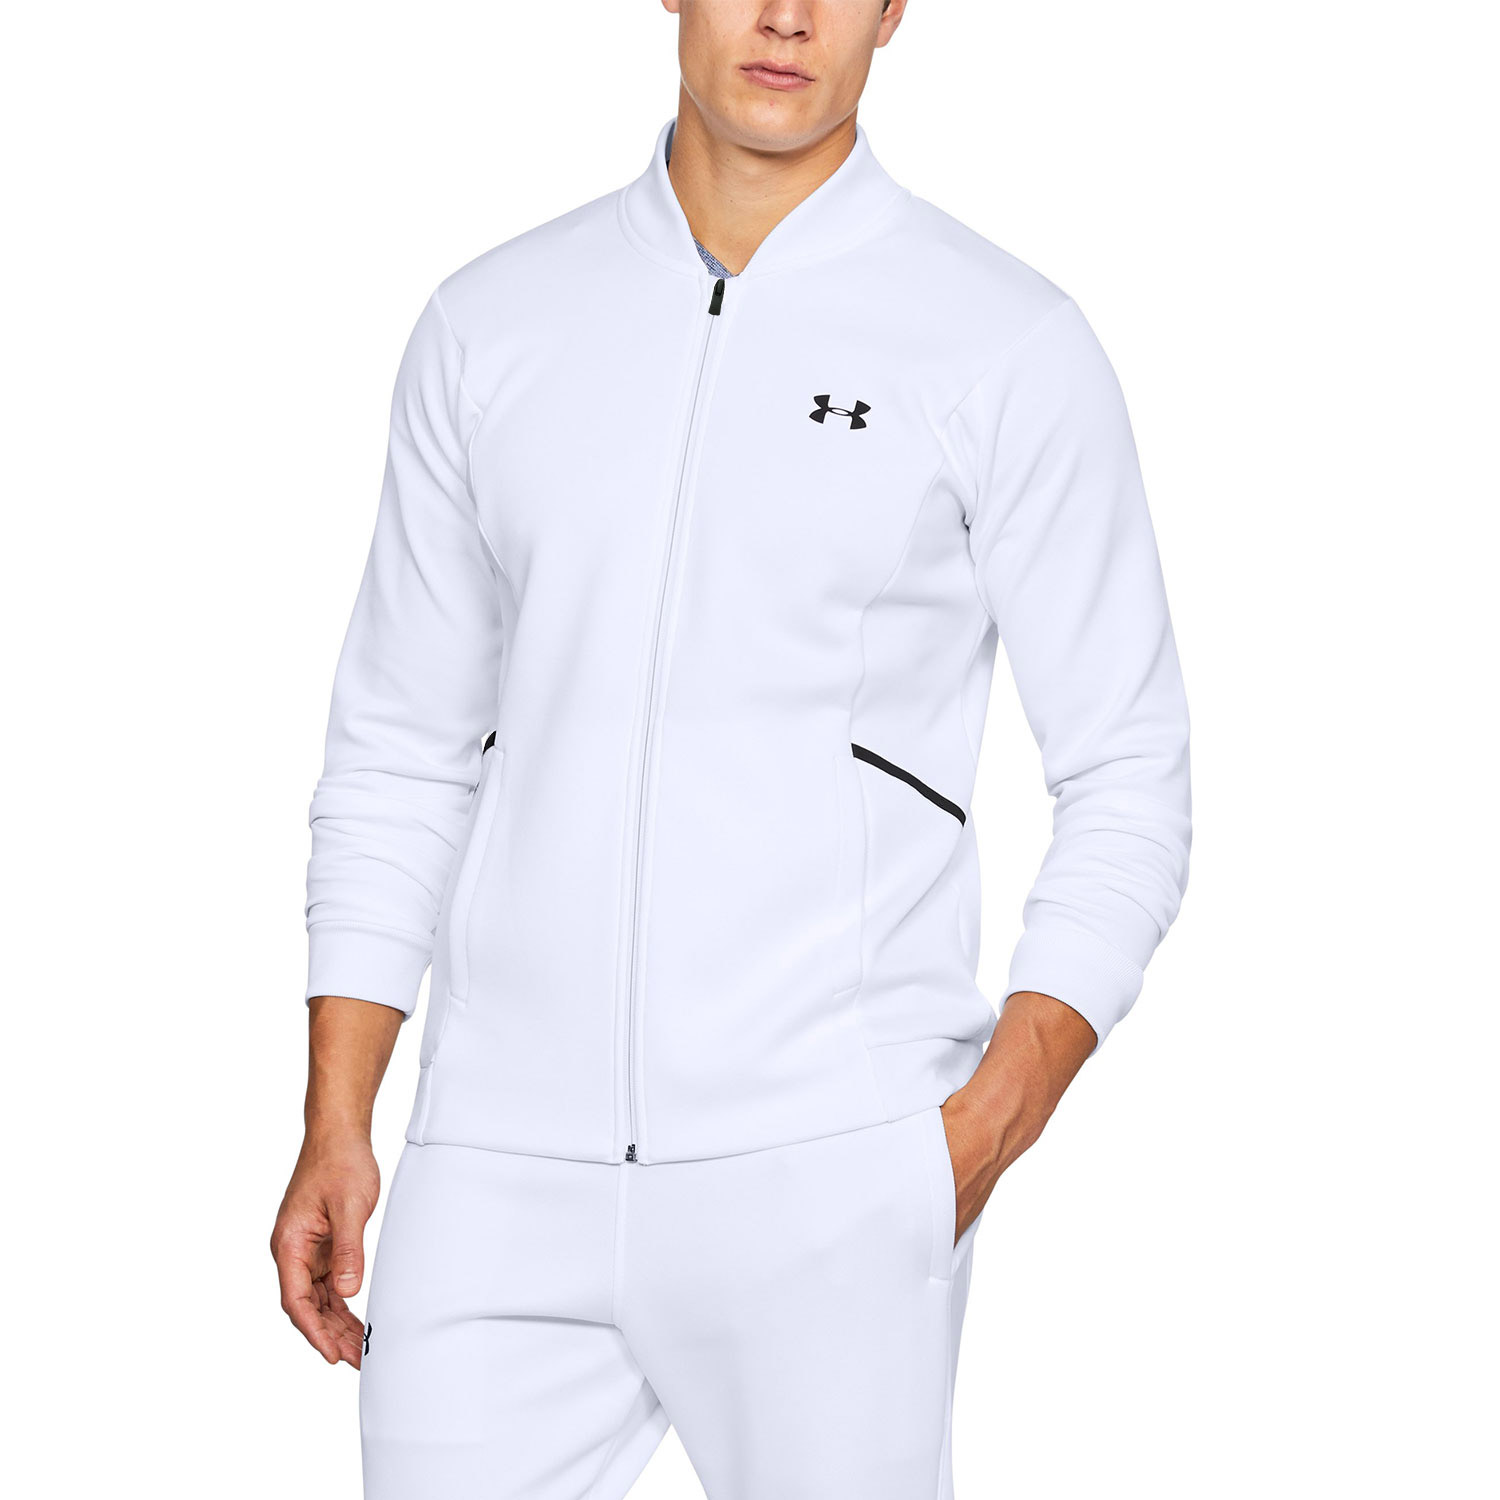 Under Armour Forge Warm Up Jacket